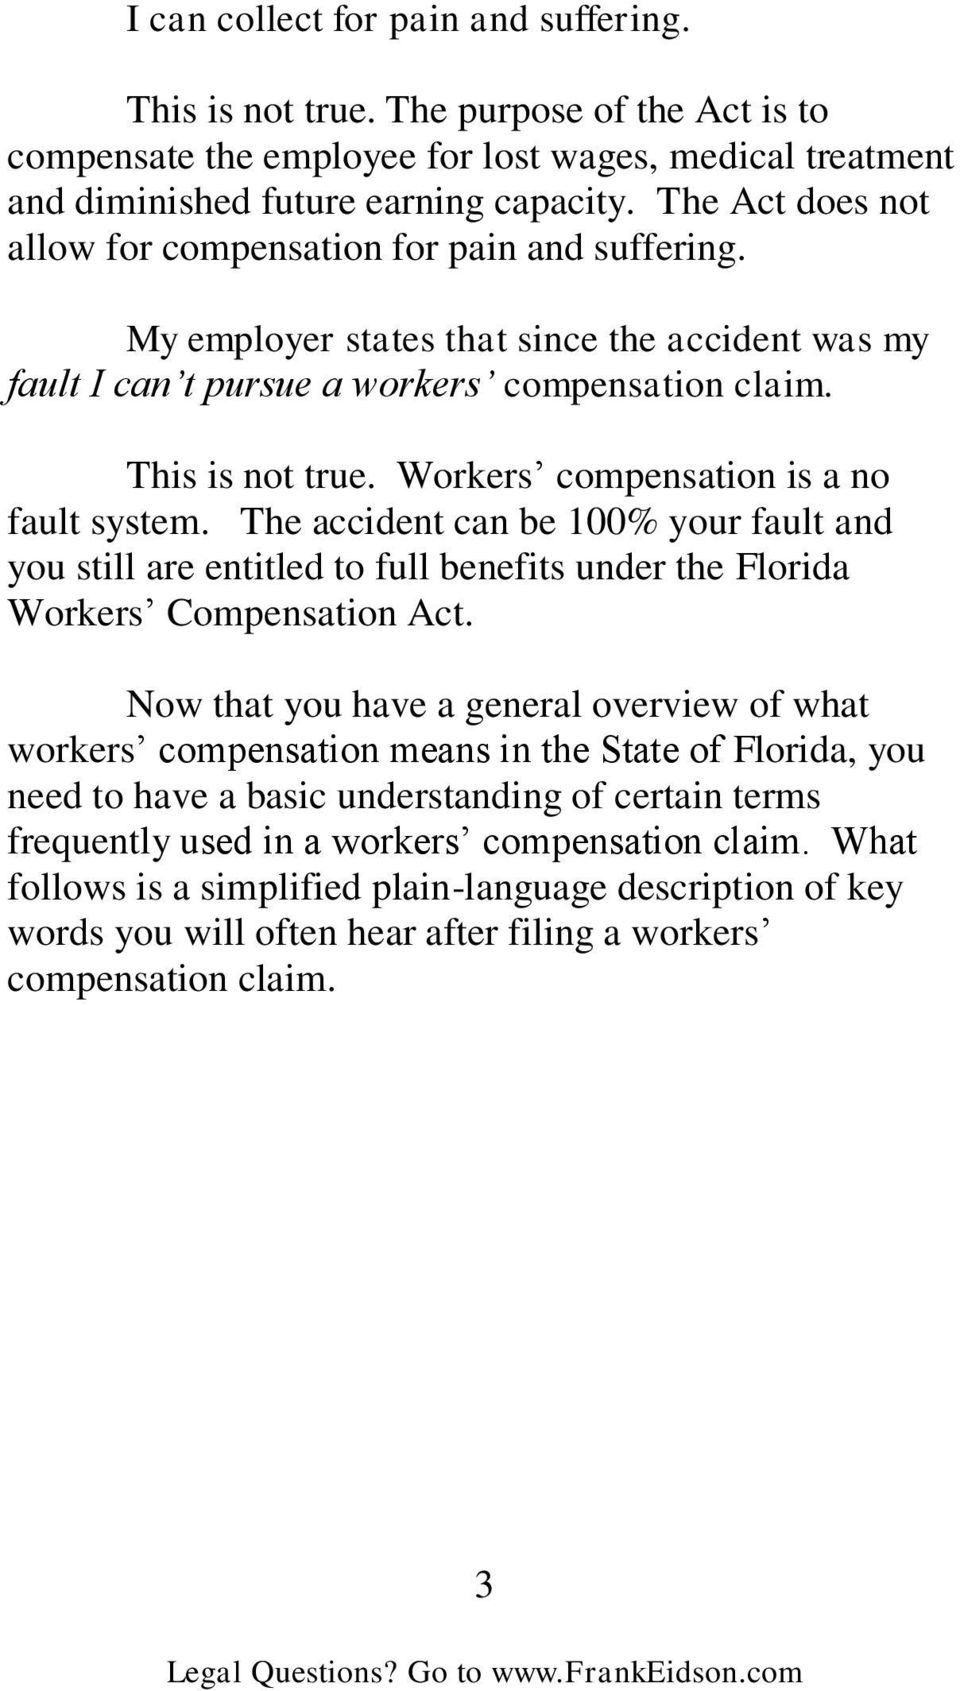 Workers compensation is a no fault system. The accident can be 100% your fault and you still are entitled to full benefits under the Florida Workers Compensation Act.